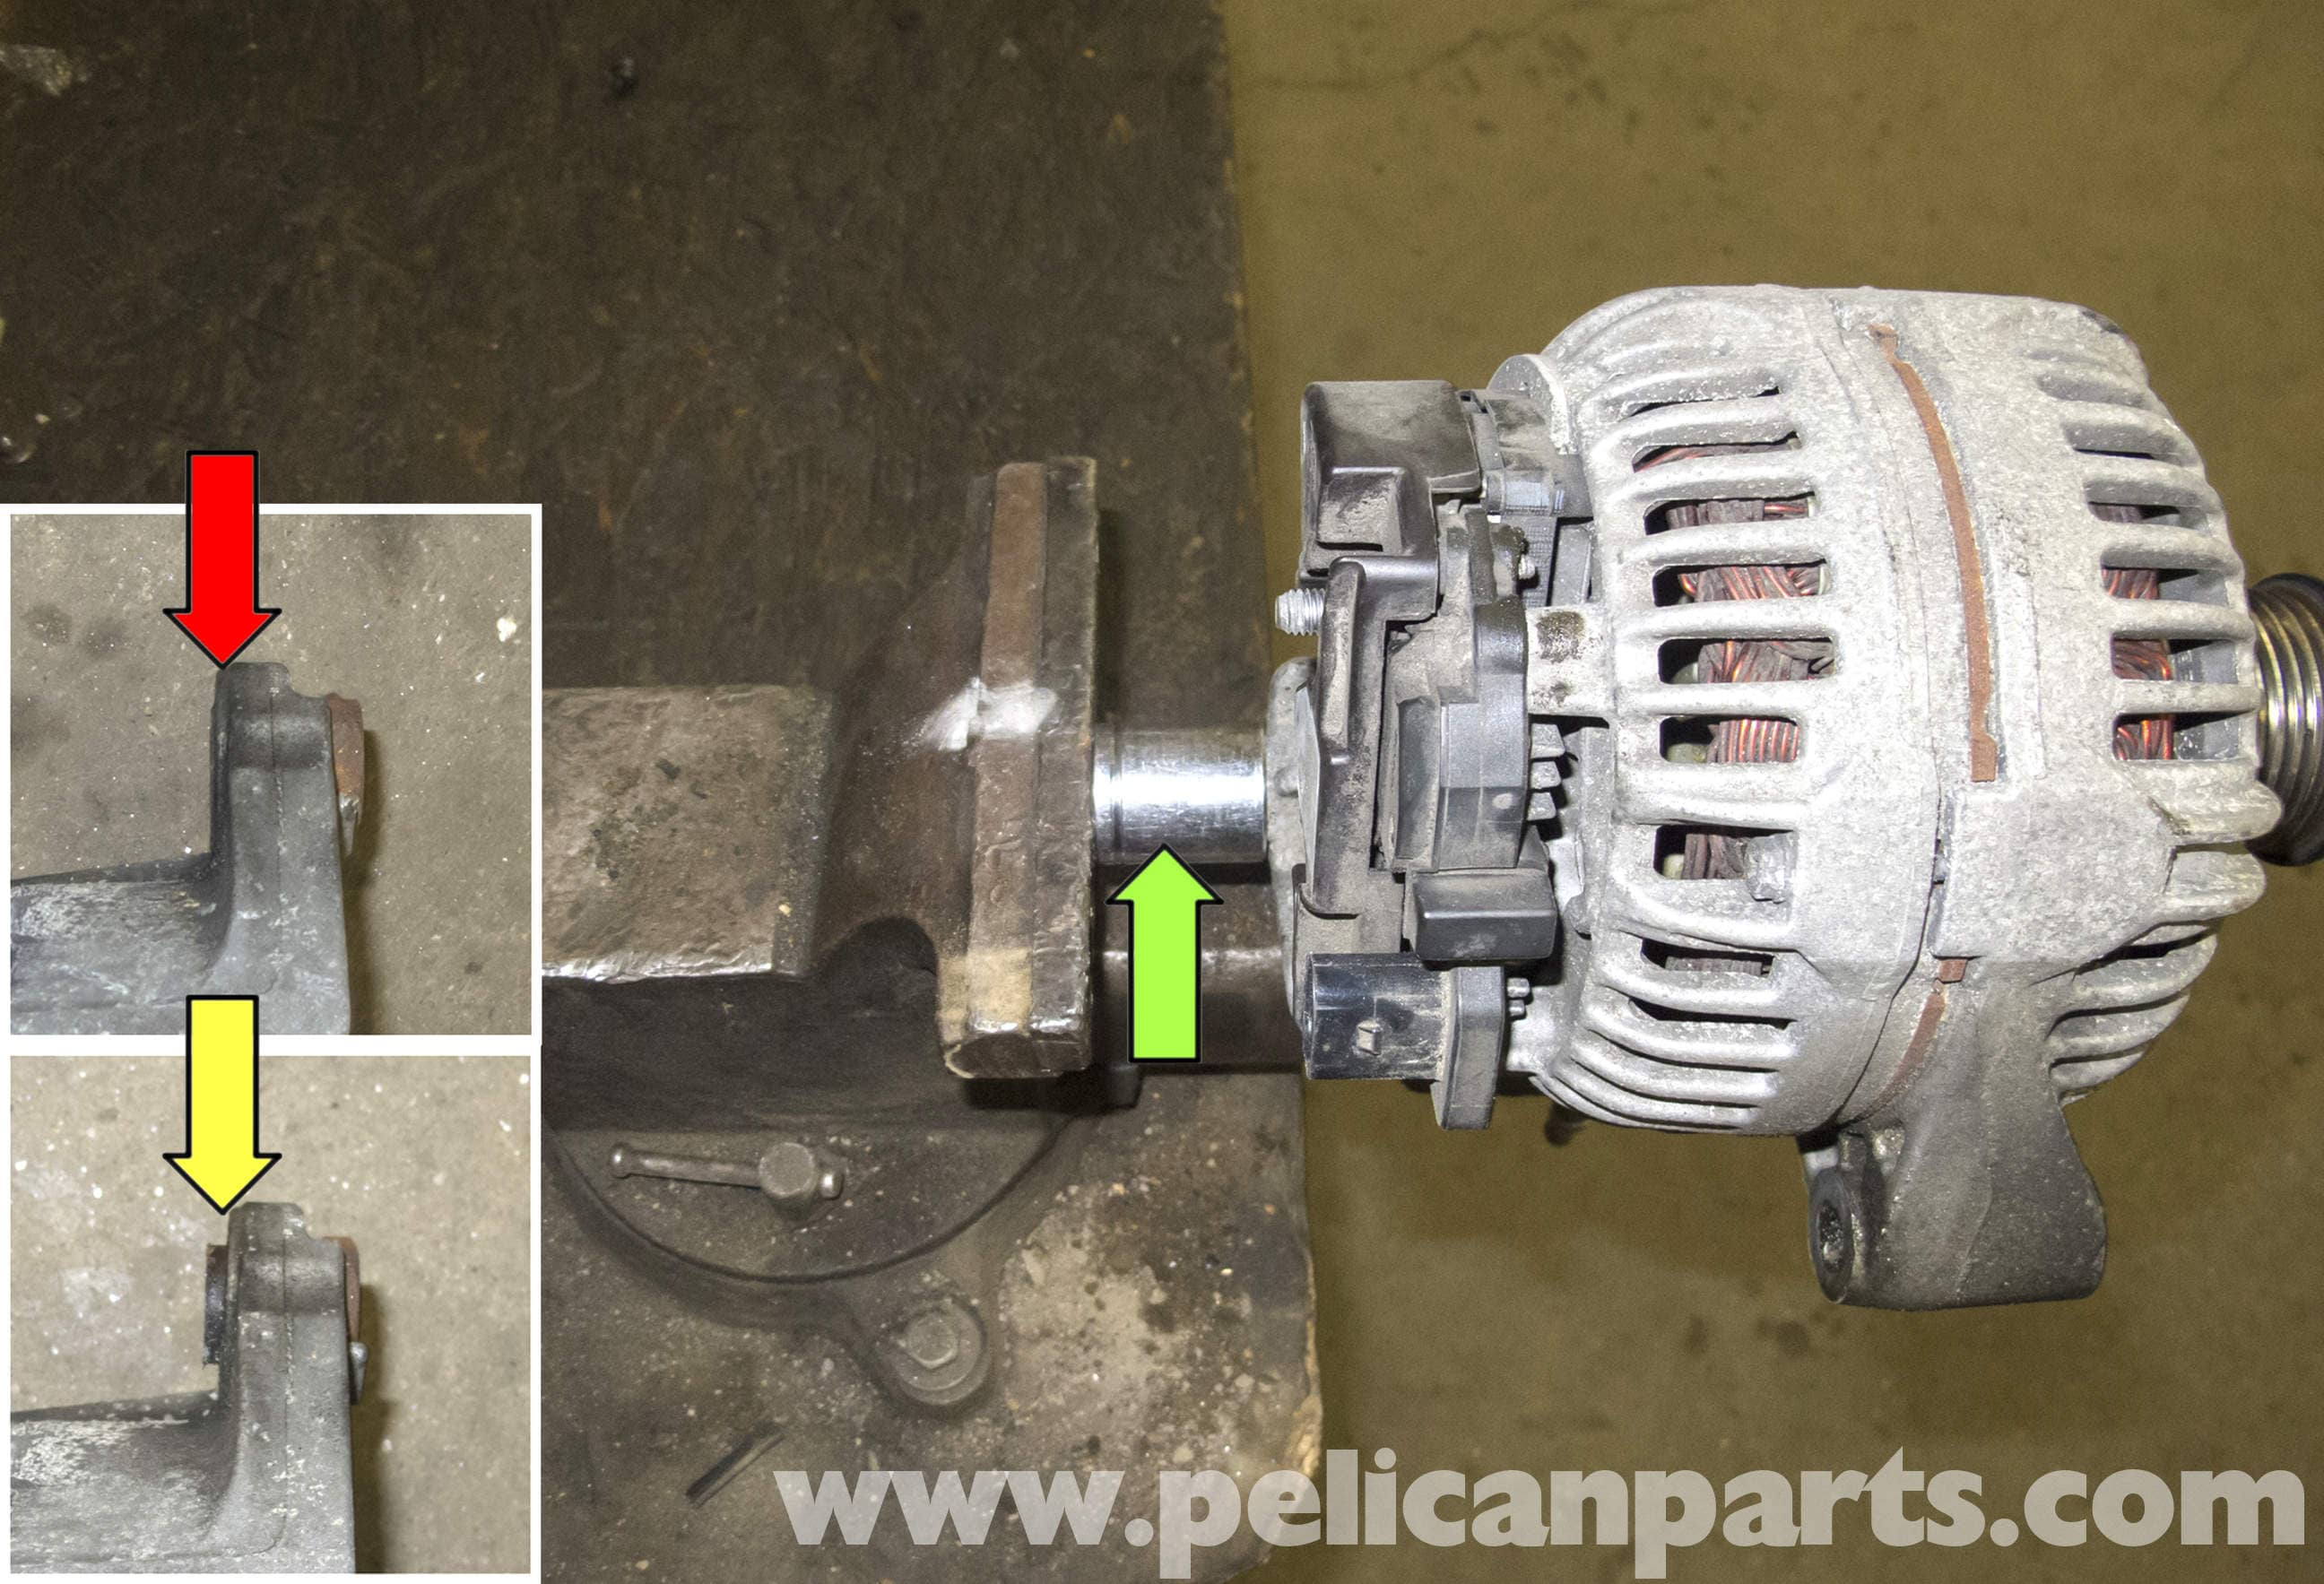 BMW E60 5-Series Alternator Replacement (M54 6 Cylinder) - Pelican Parts  Technical ArticlePelican Parts